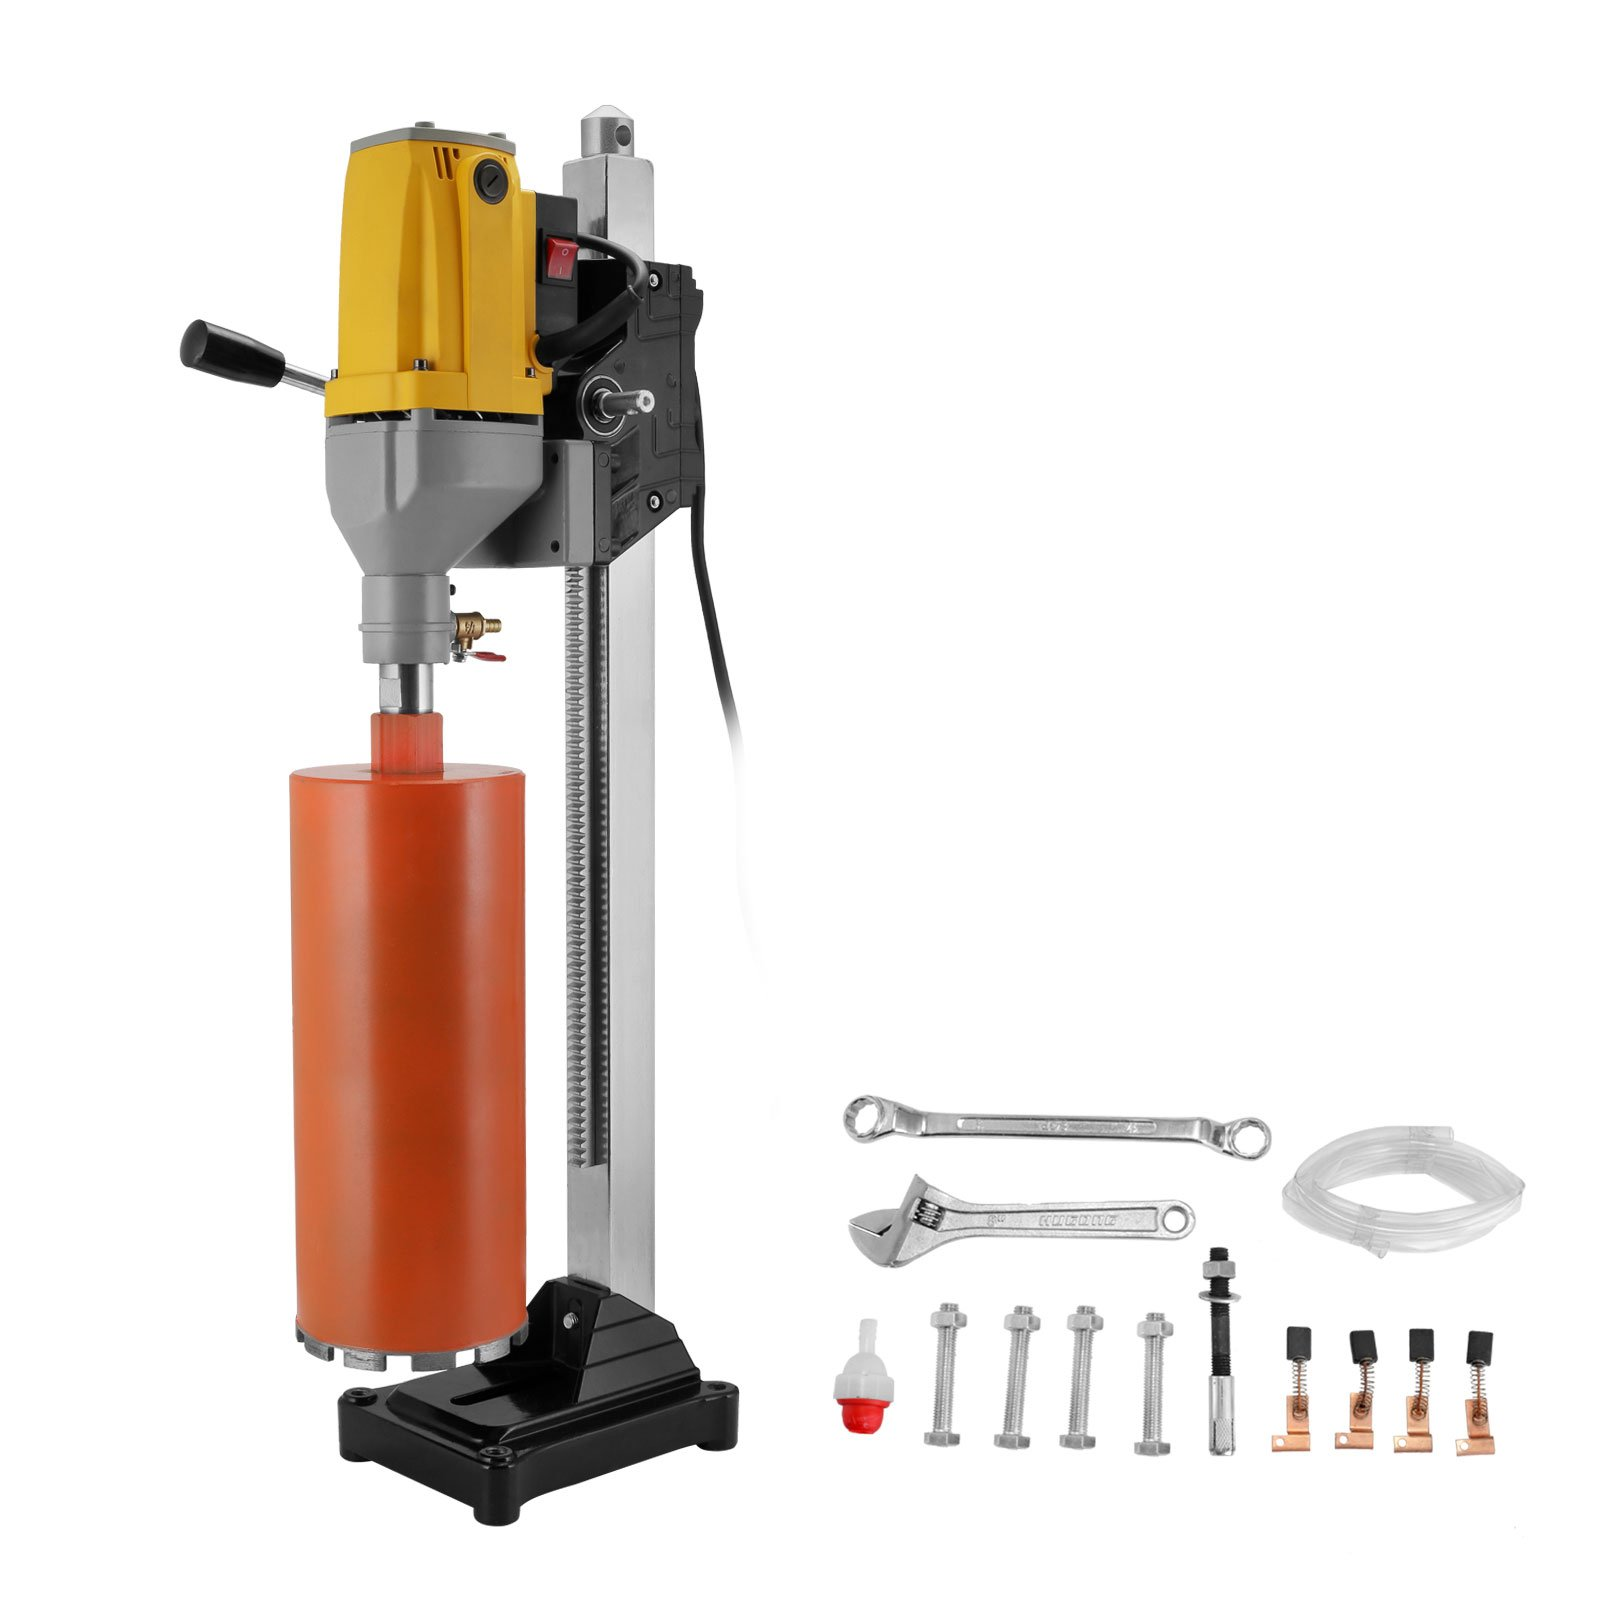 160mm Diamond Core Drill Wet//Dry Handheld Concrete Core Drill Machine 2180W 110V